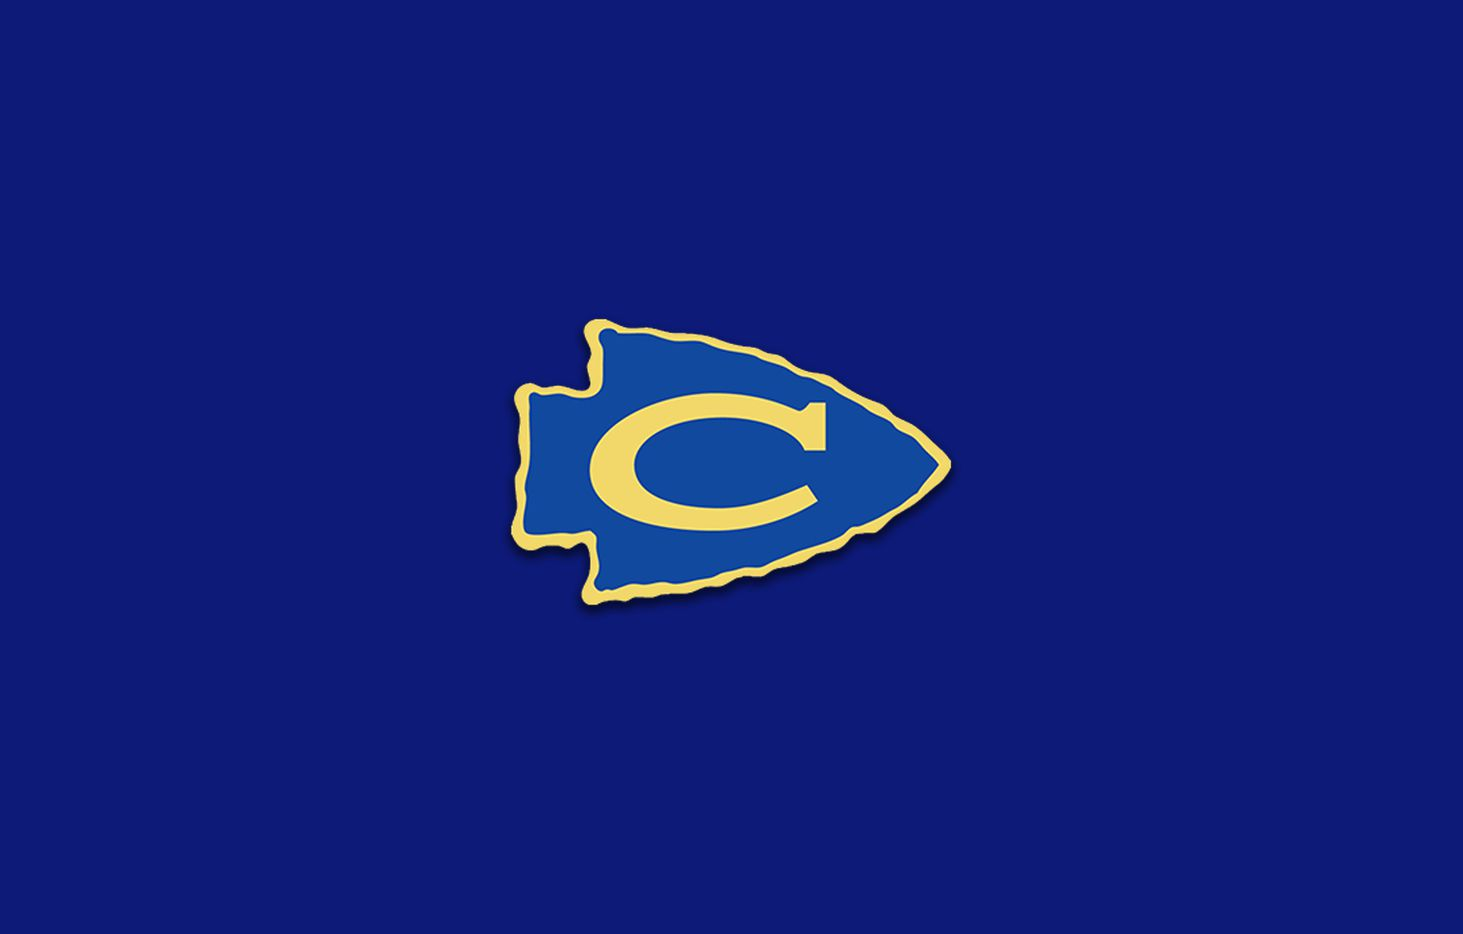 Nevada Community logo.